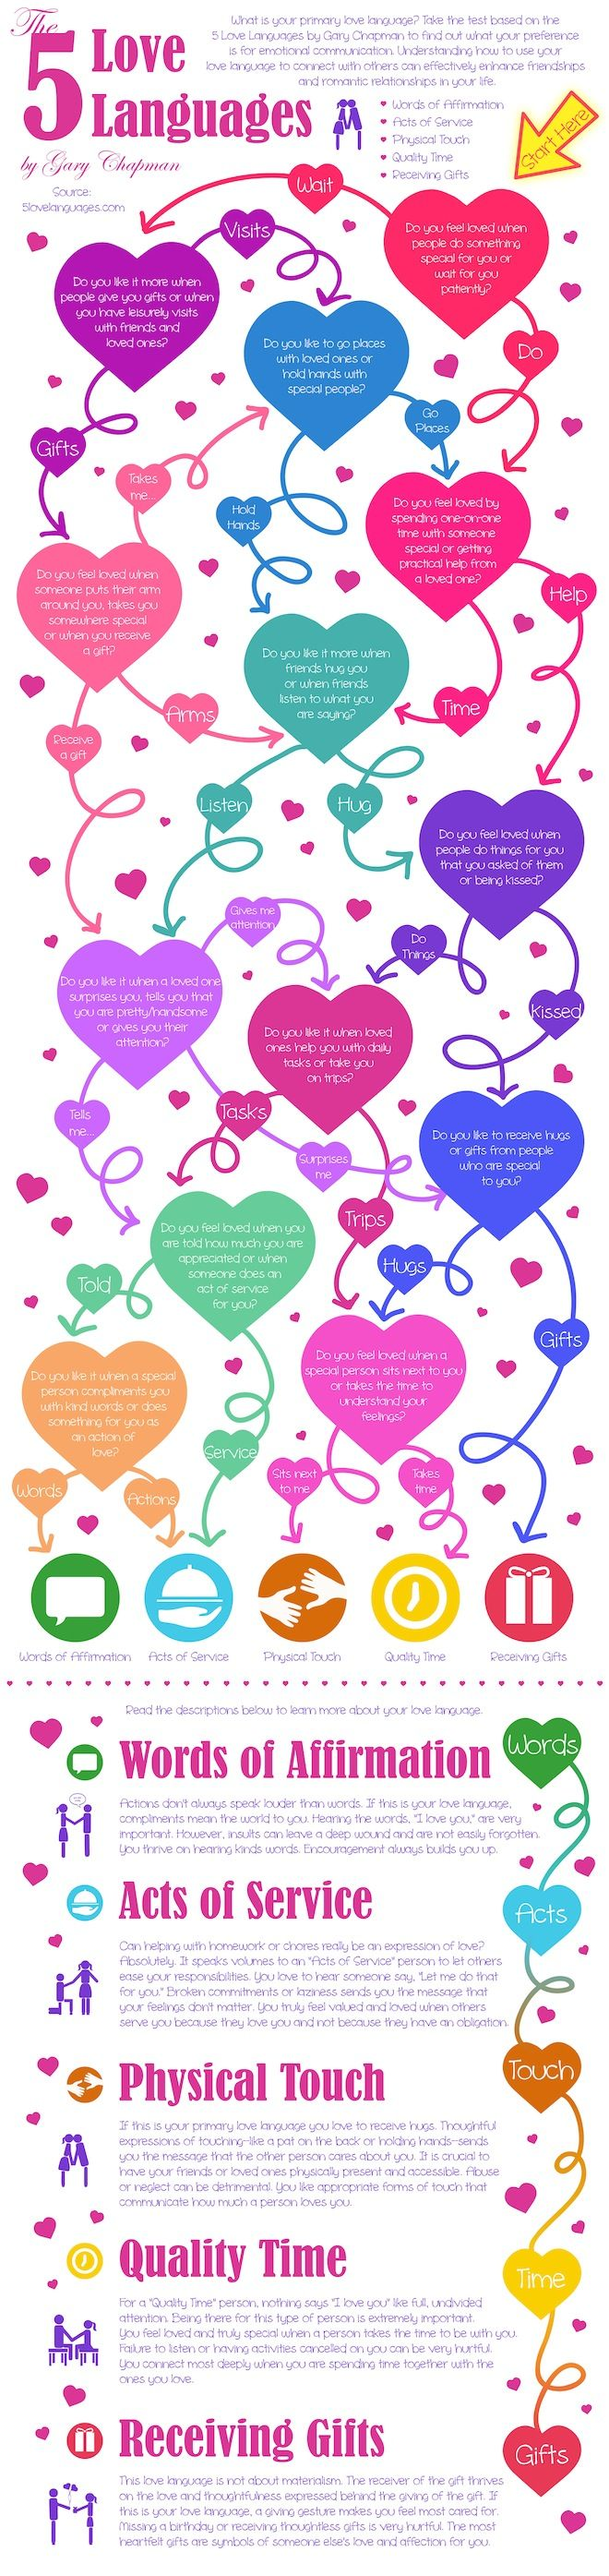 Love | Tipsographic | More love tips at http://www.tipsographic.com/